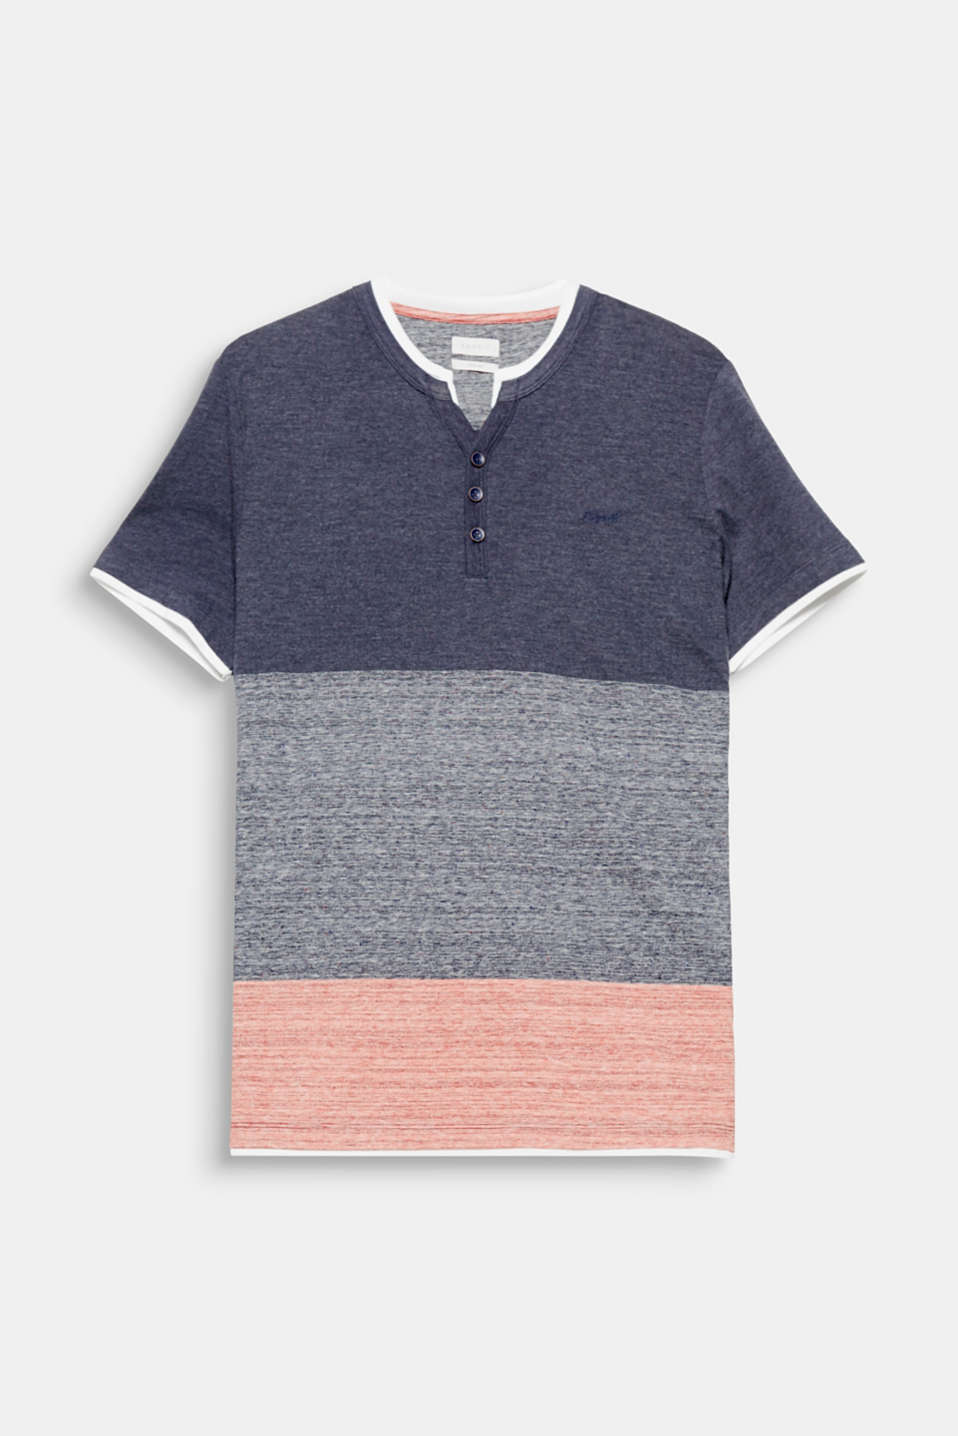 The block stripes in an exciting mix of textures give this Henley T-shirt its casual look.